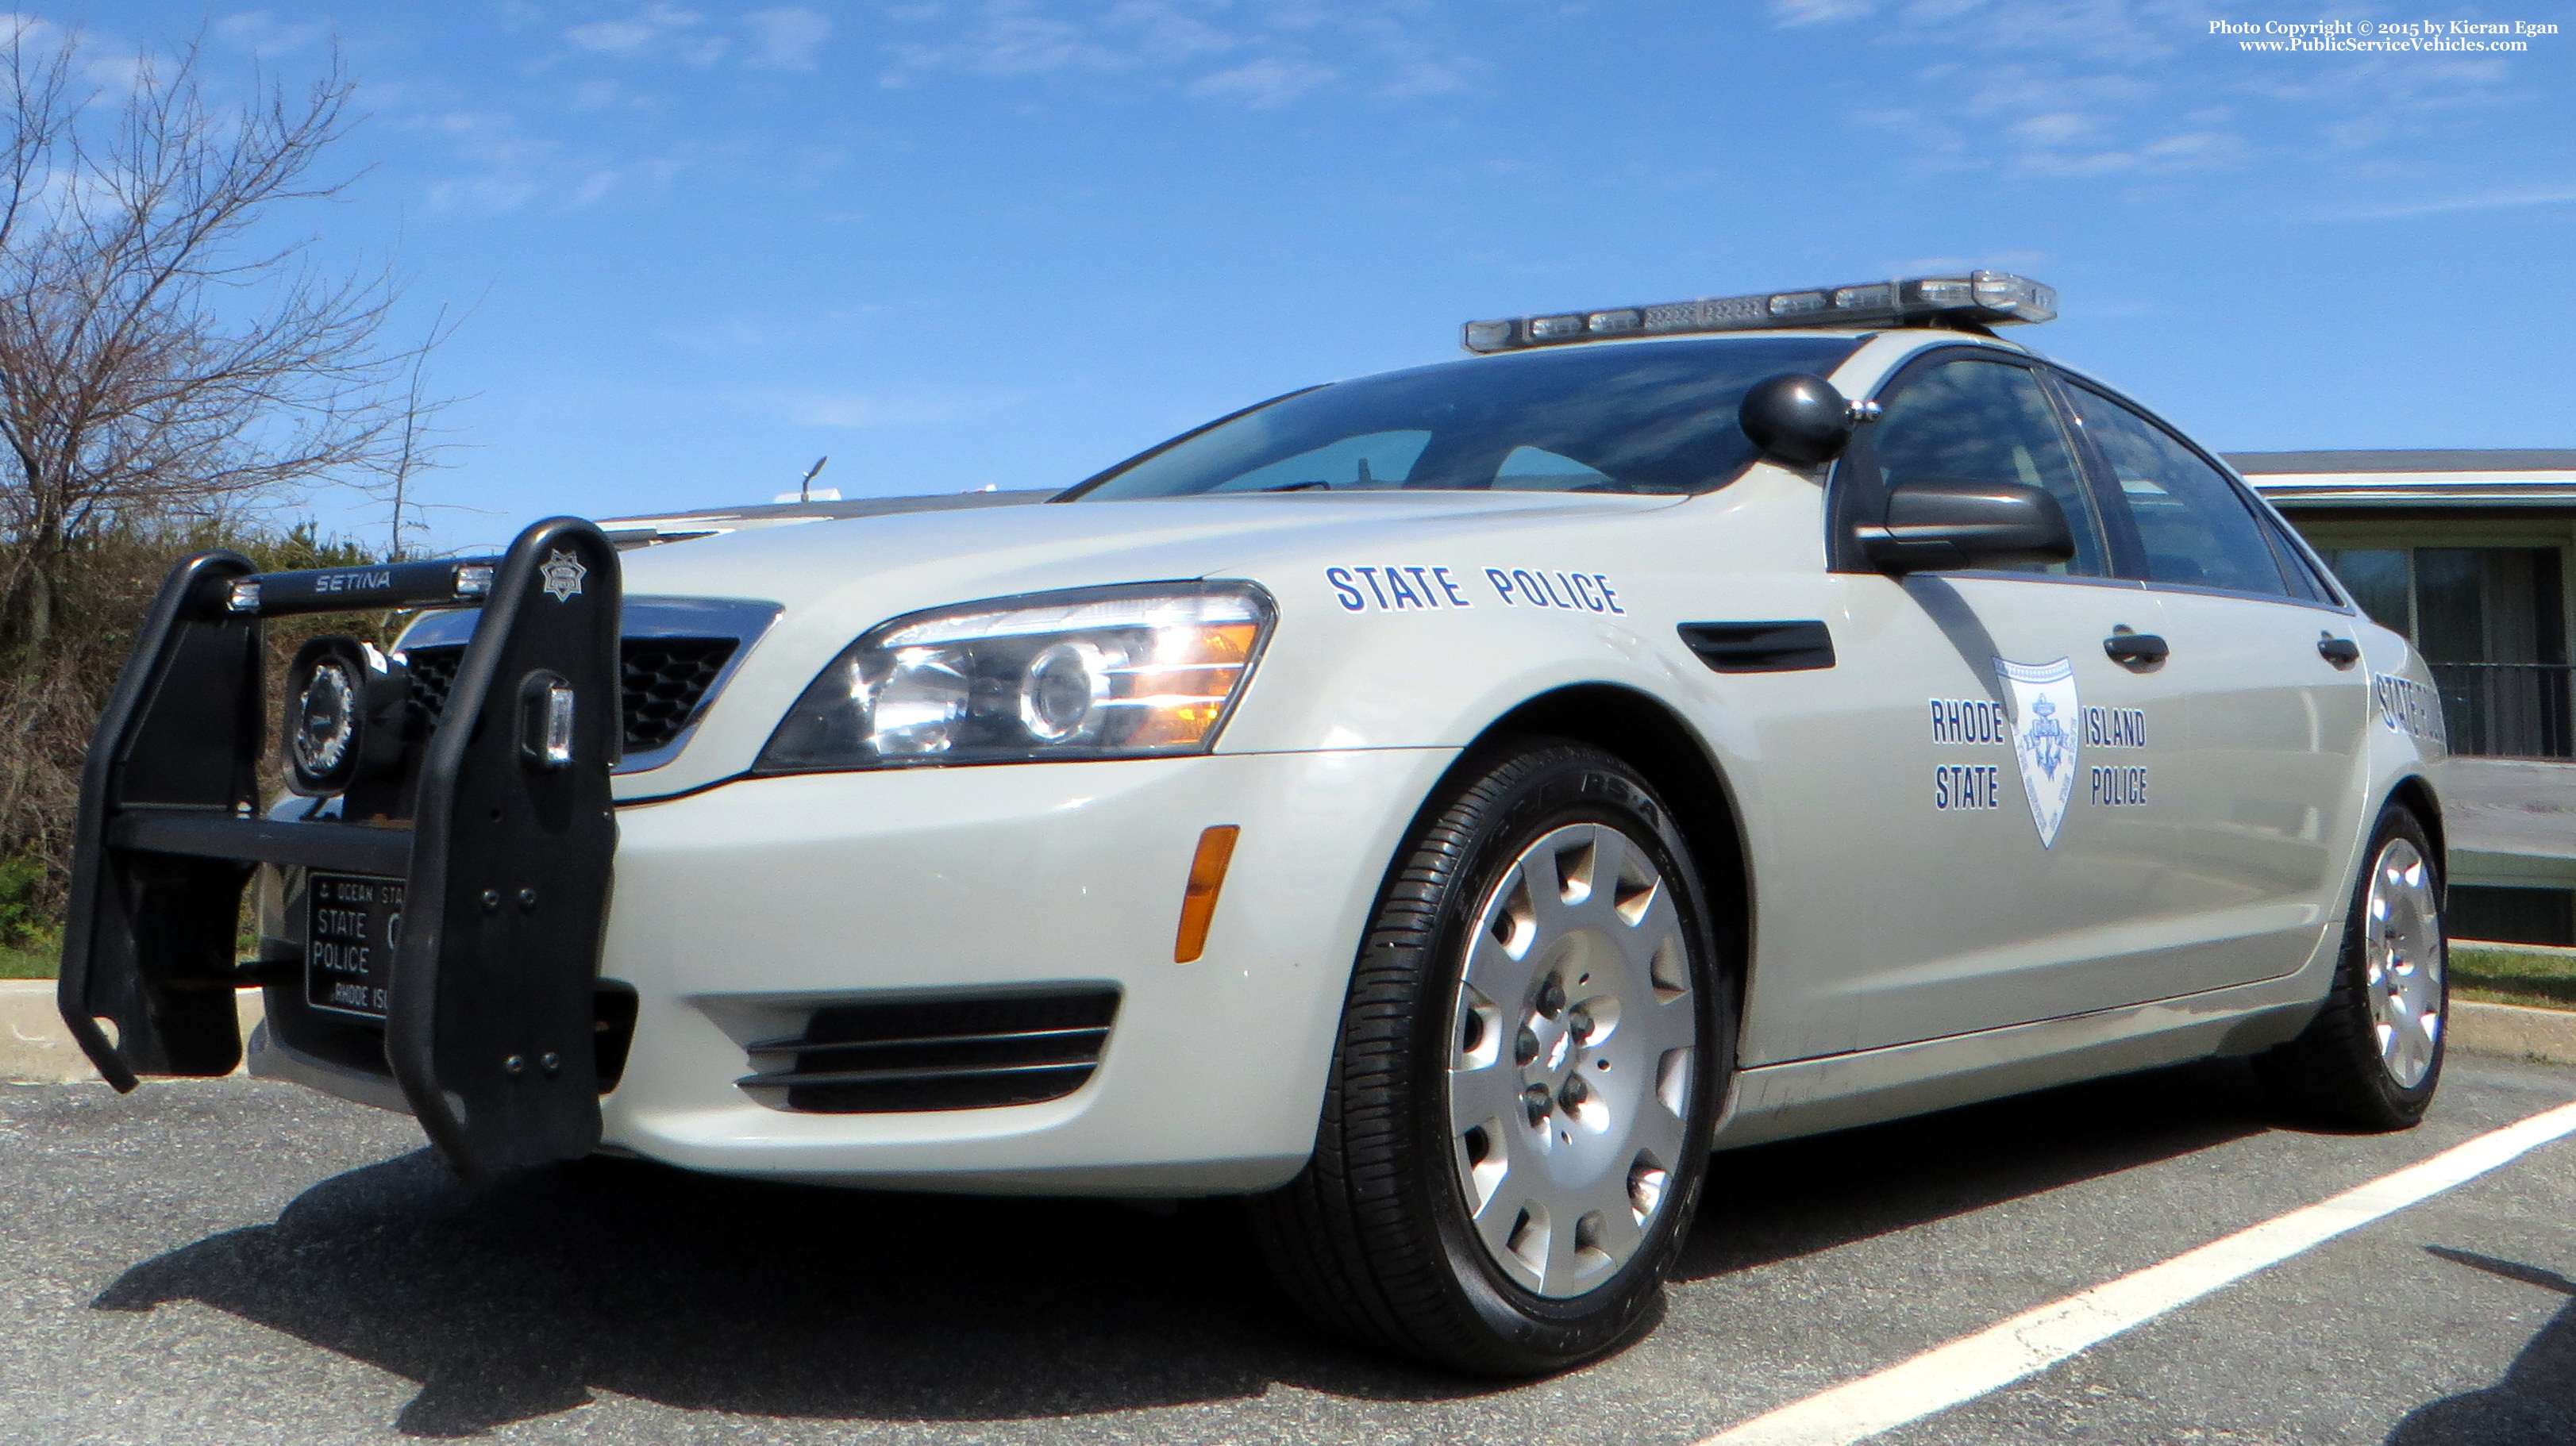 A photo  of Rhode Island State Police             Cruiser 97, a 2013 Chevrolet Caprice             taken by Kieran Egan